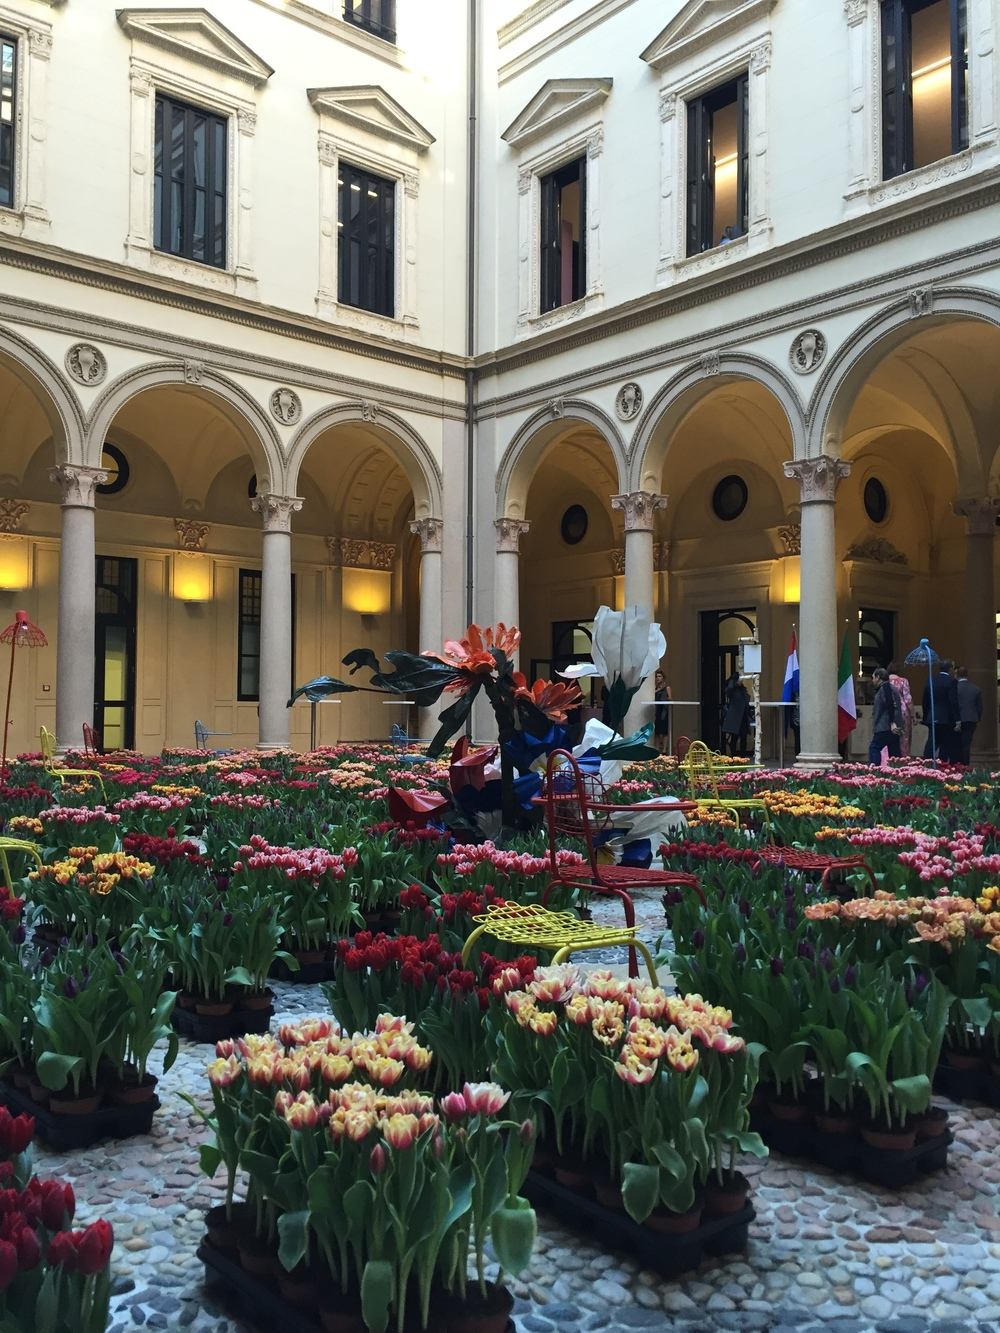 Off the plane and into a palazzo. The courtyard at Palazzo Francesco Turati was filled with beautiful tulips for  Masterly, The Dutch in Milano  exhibition.